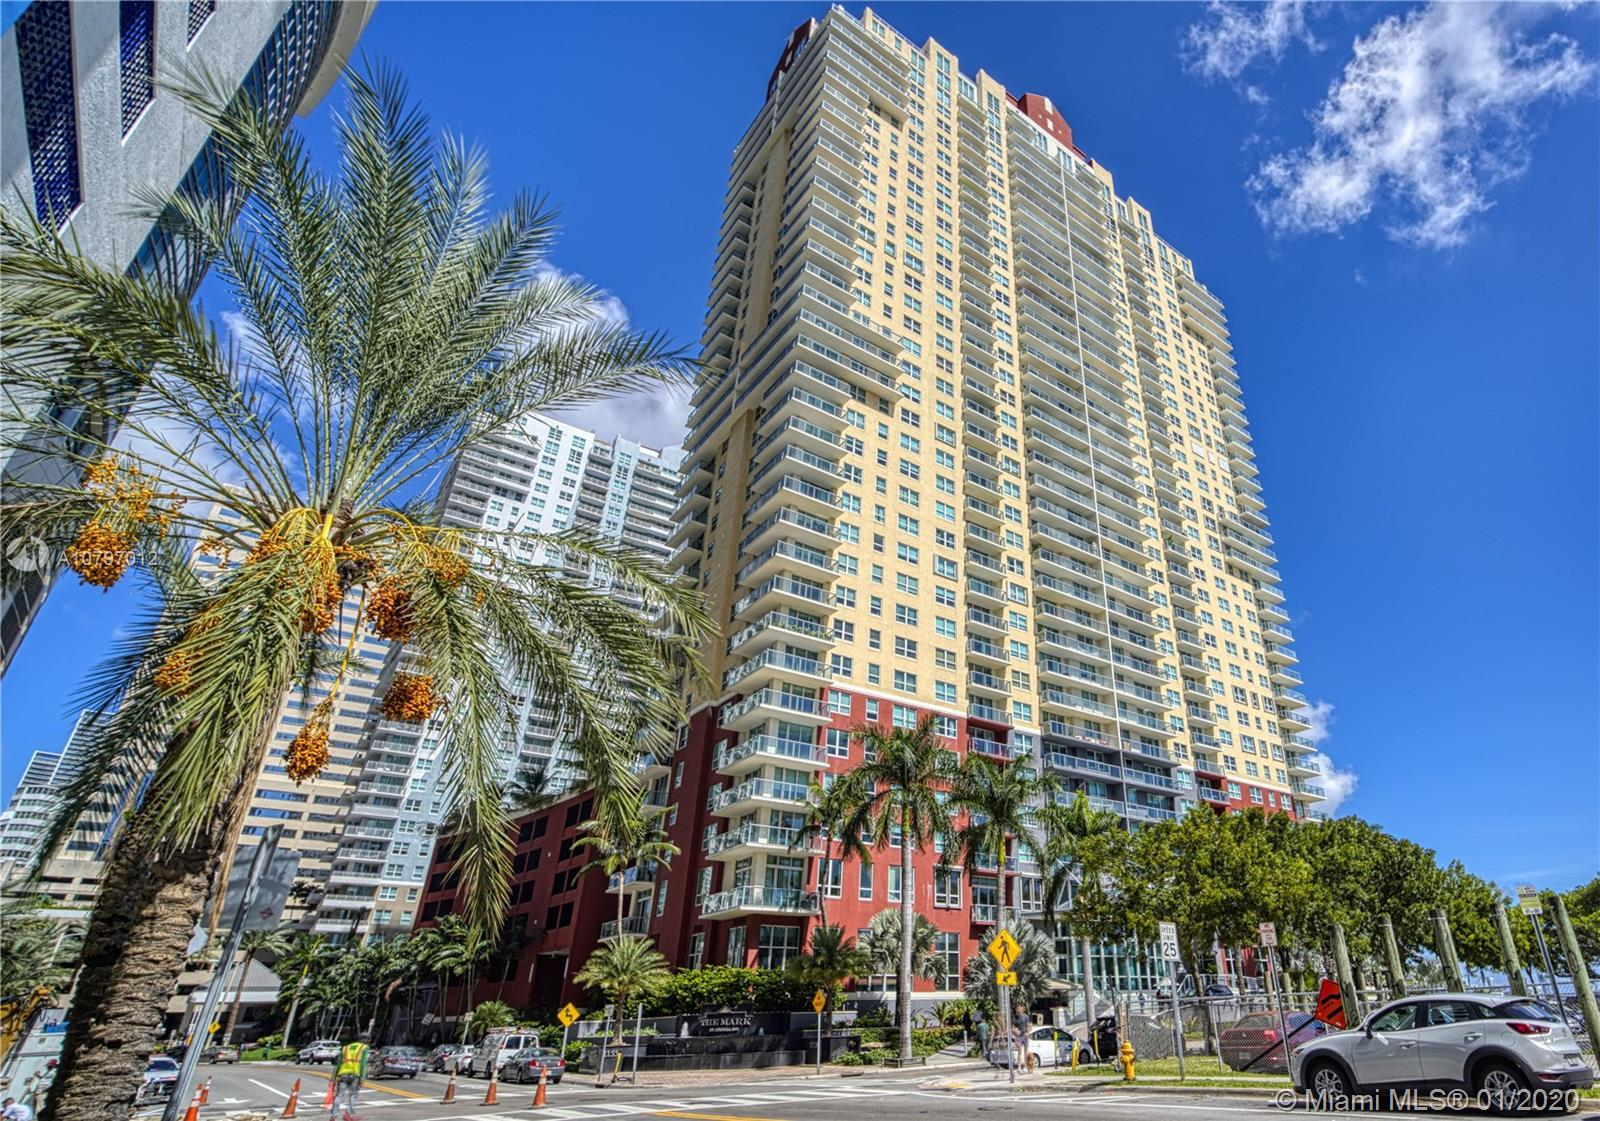 Great location, in Brickell. 2/2 unit available , Stainless Steel appliances and washer and dryer in